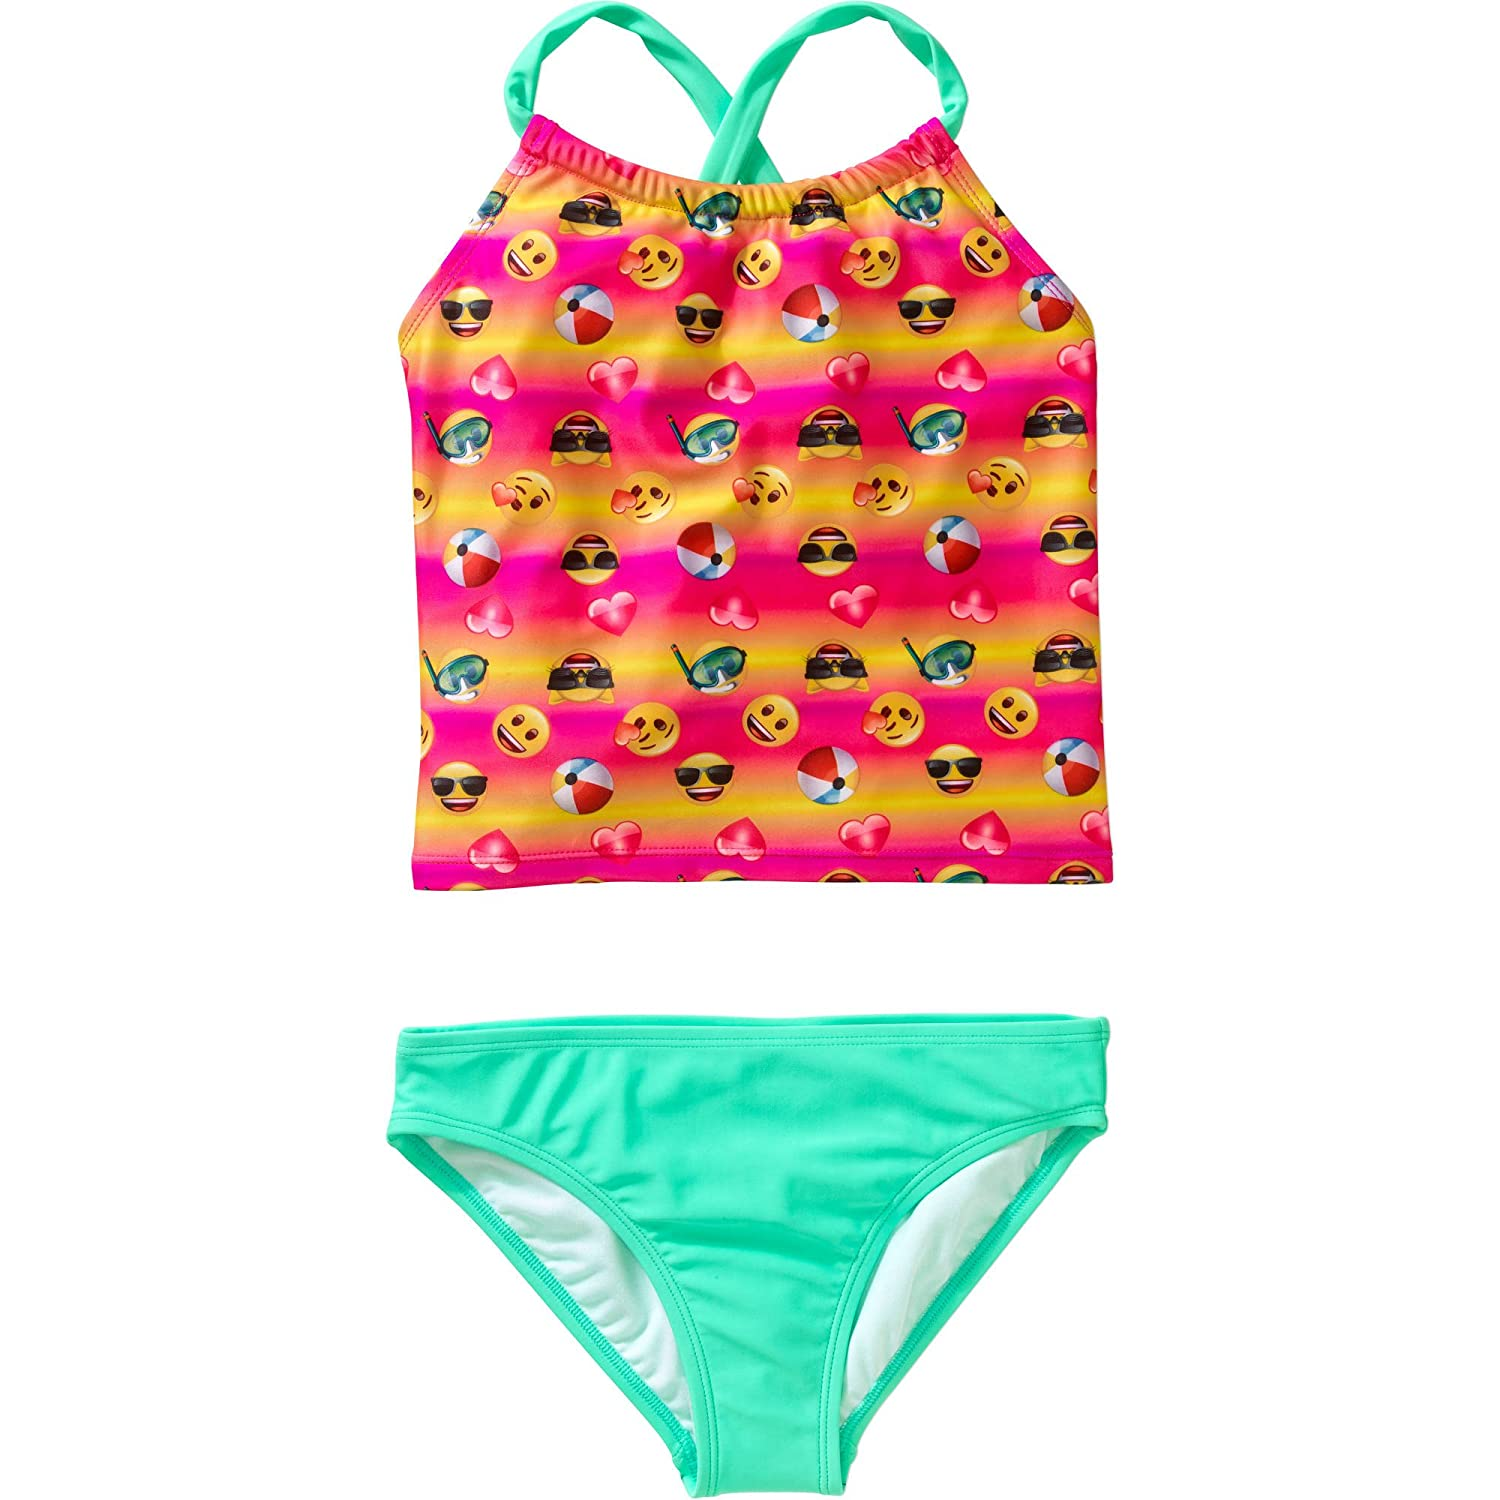 a469891cc61cc Your little girl will love wearing this two-piece Emoji Expressions Girls\'  Tankini Swimsuit while making a splash in the pool in the ocean.